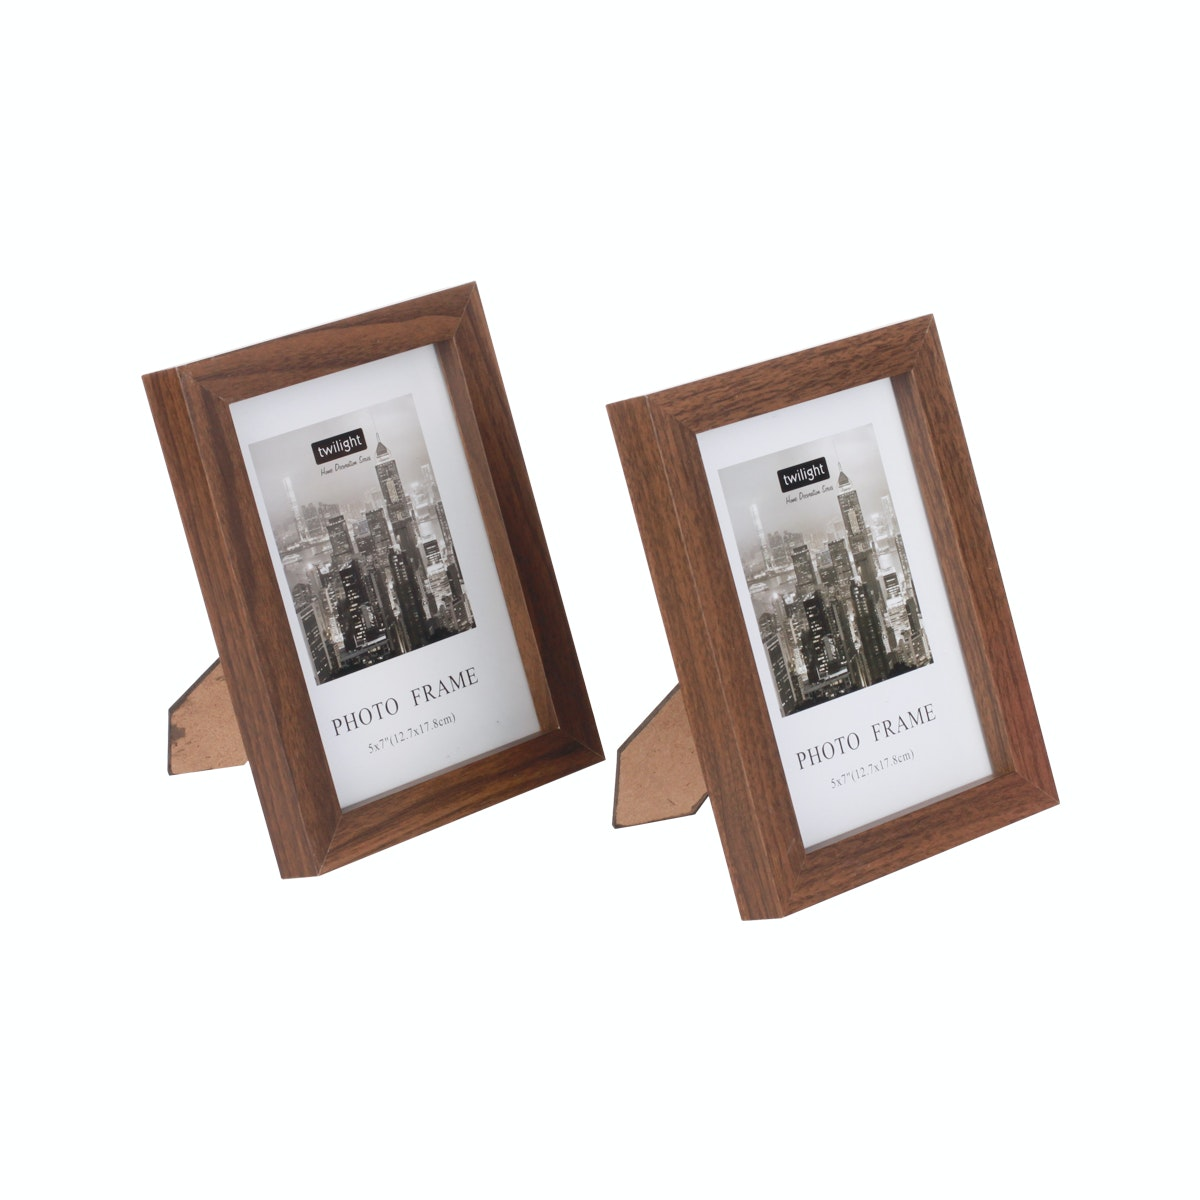 Informa Photo Frame Twilight 5X7